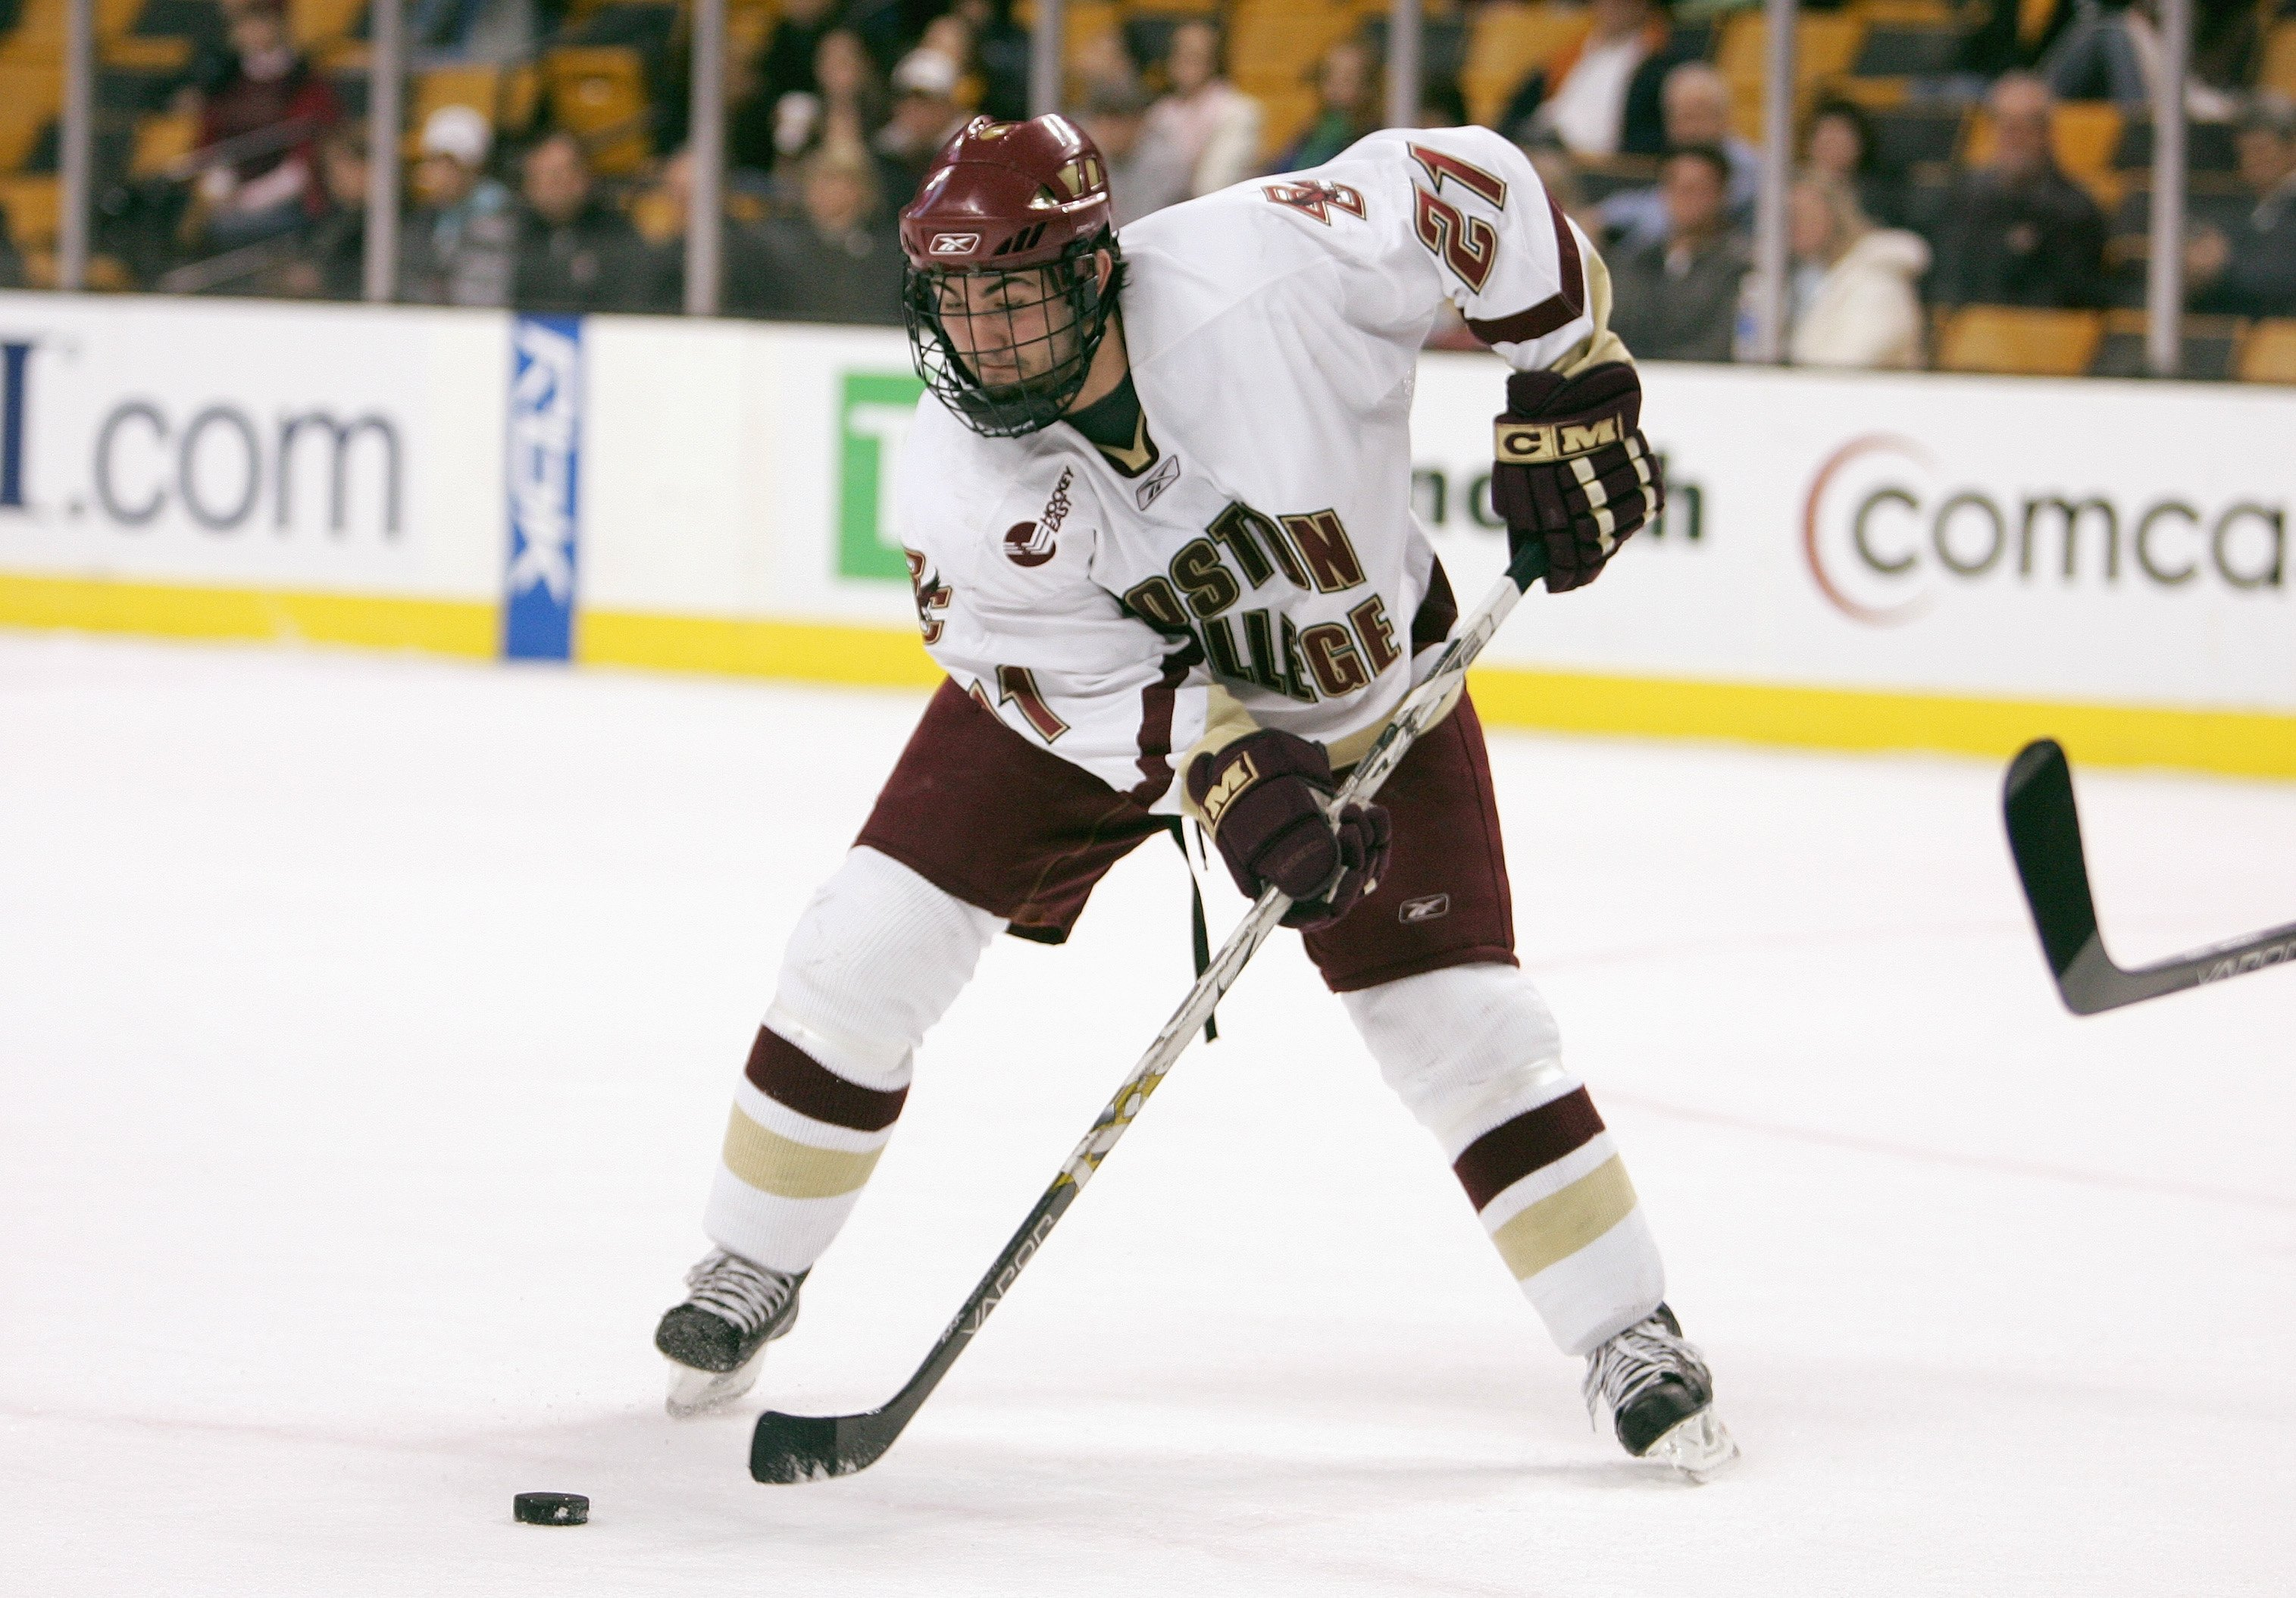 BOSTON - MARCH 16: Benn Ferriero #21 of the Boston College Eagles handles the puck against the Boston University Terriers during the Hockey East Tournament on March 16,2007 at TD Banknorth Garden in Boston, Massachusetts. (Photo by Elsa/Getty Images)